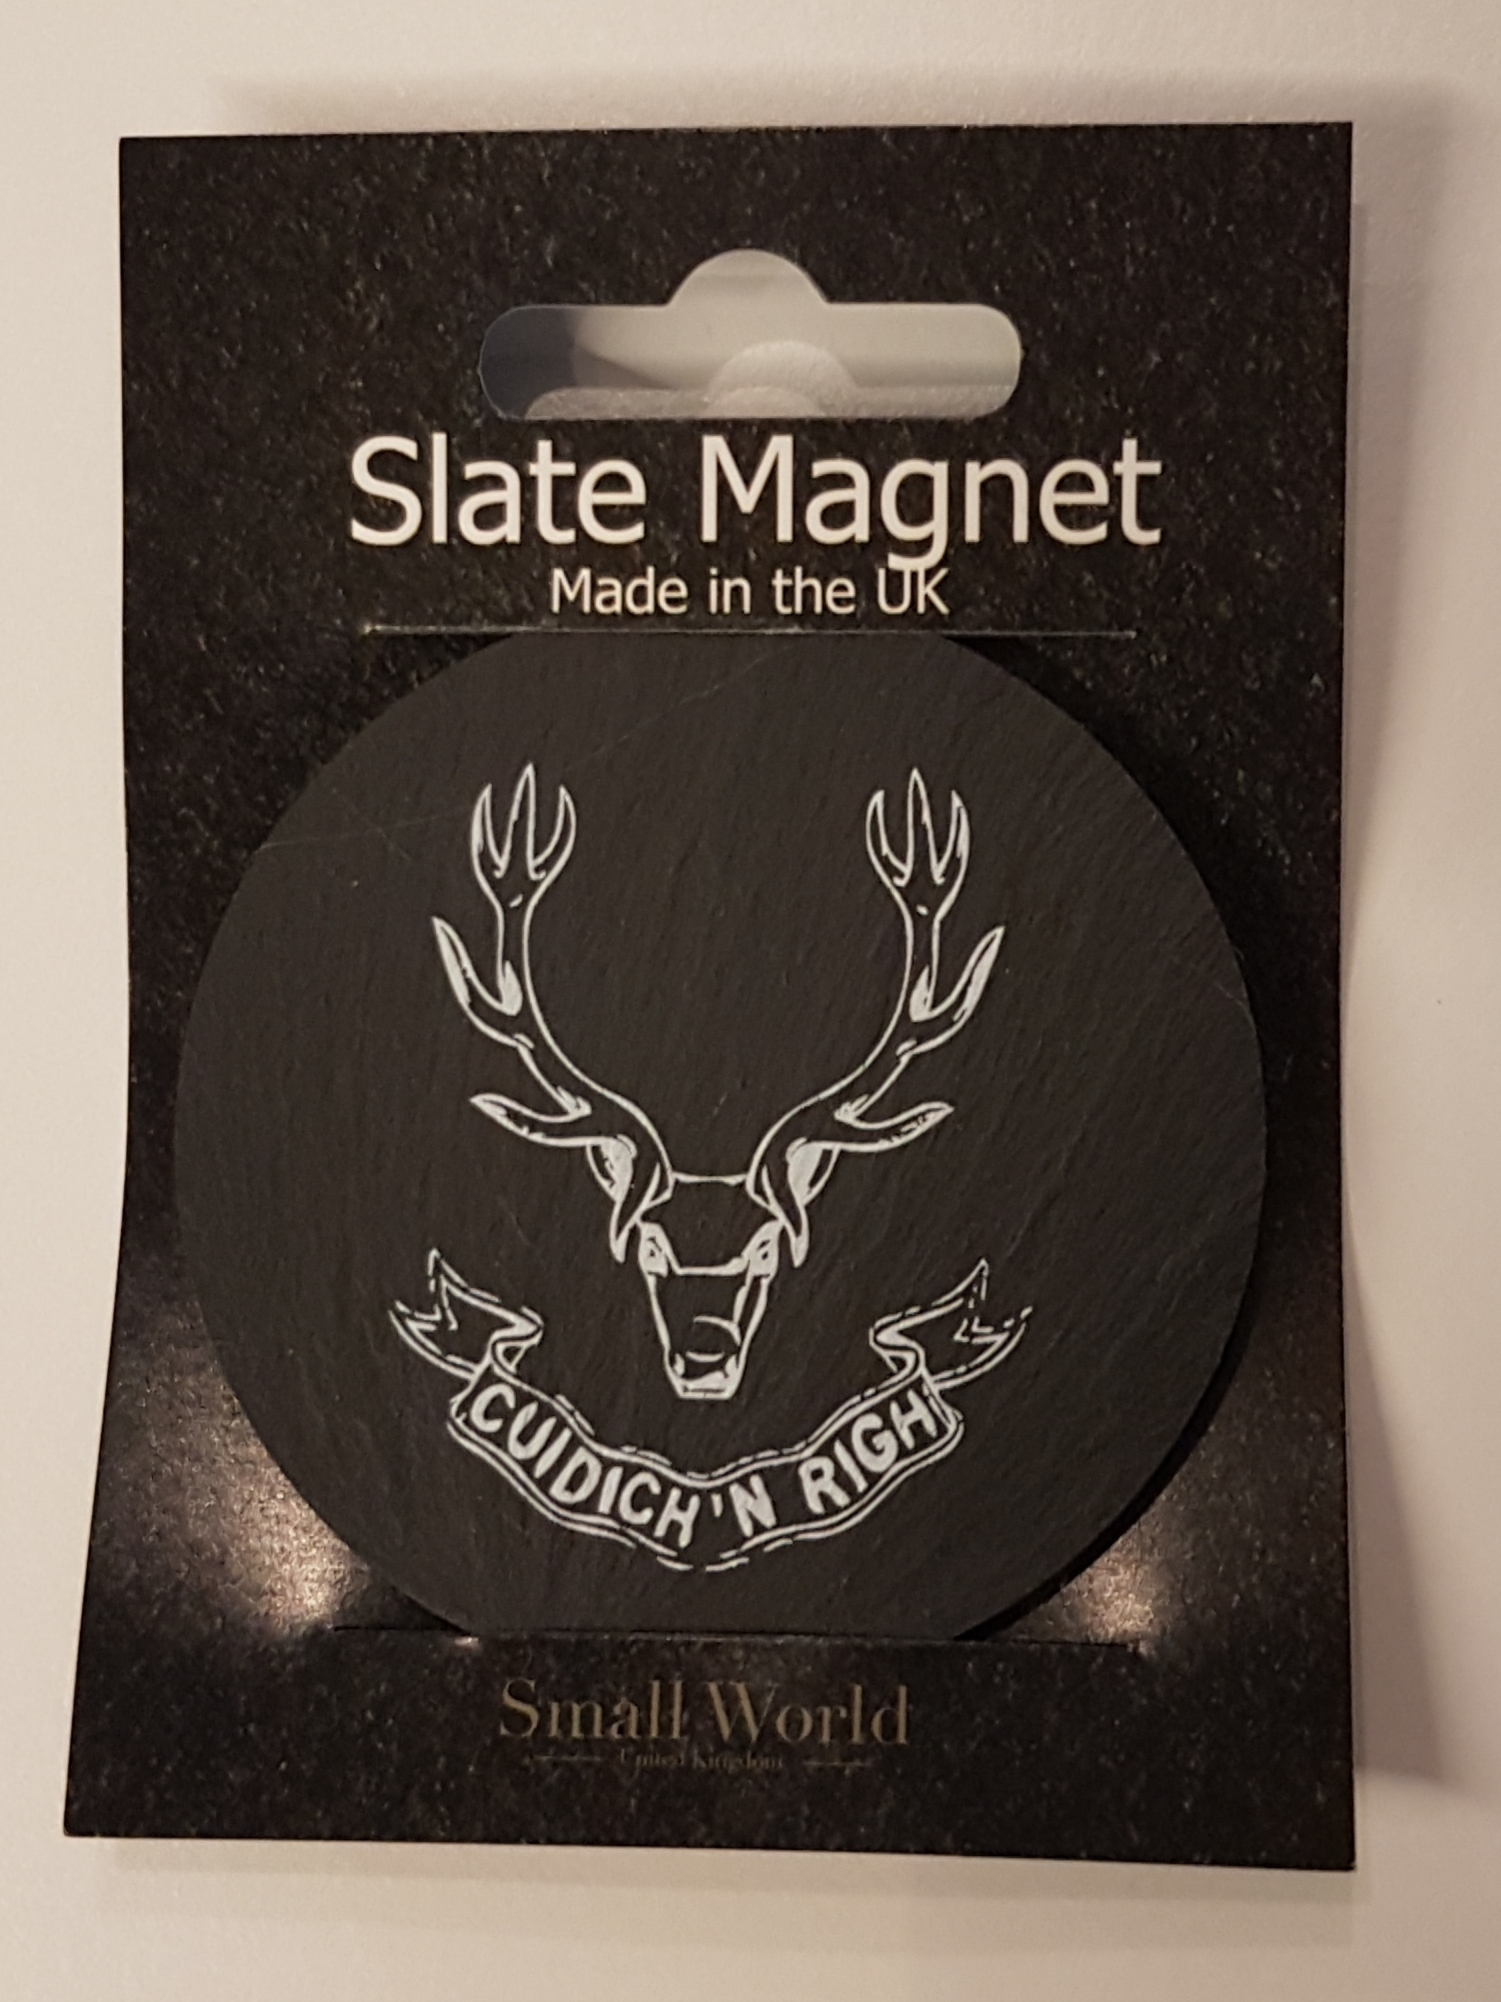 Slate Magnet - The Seafoth Highlanders